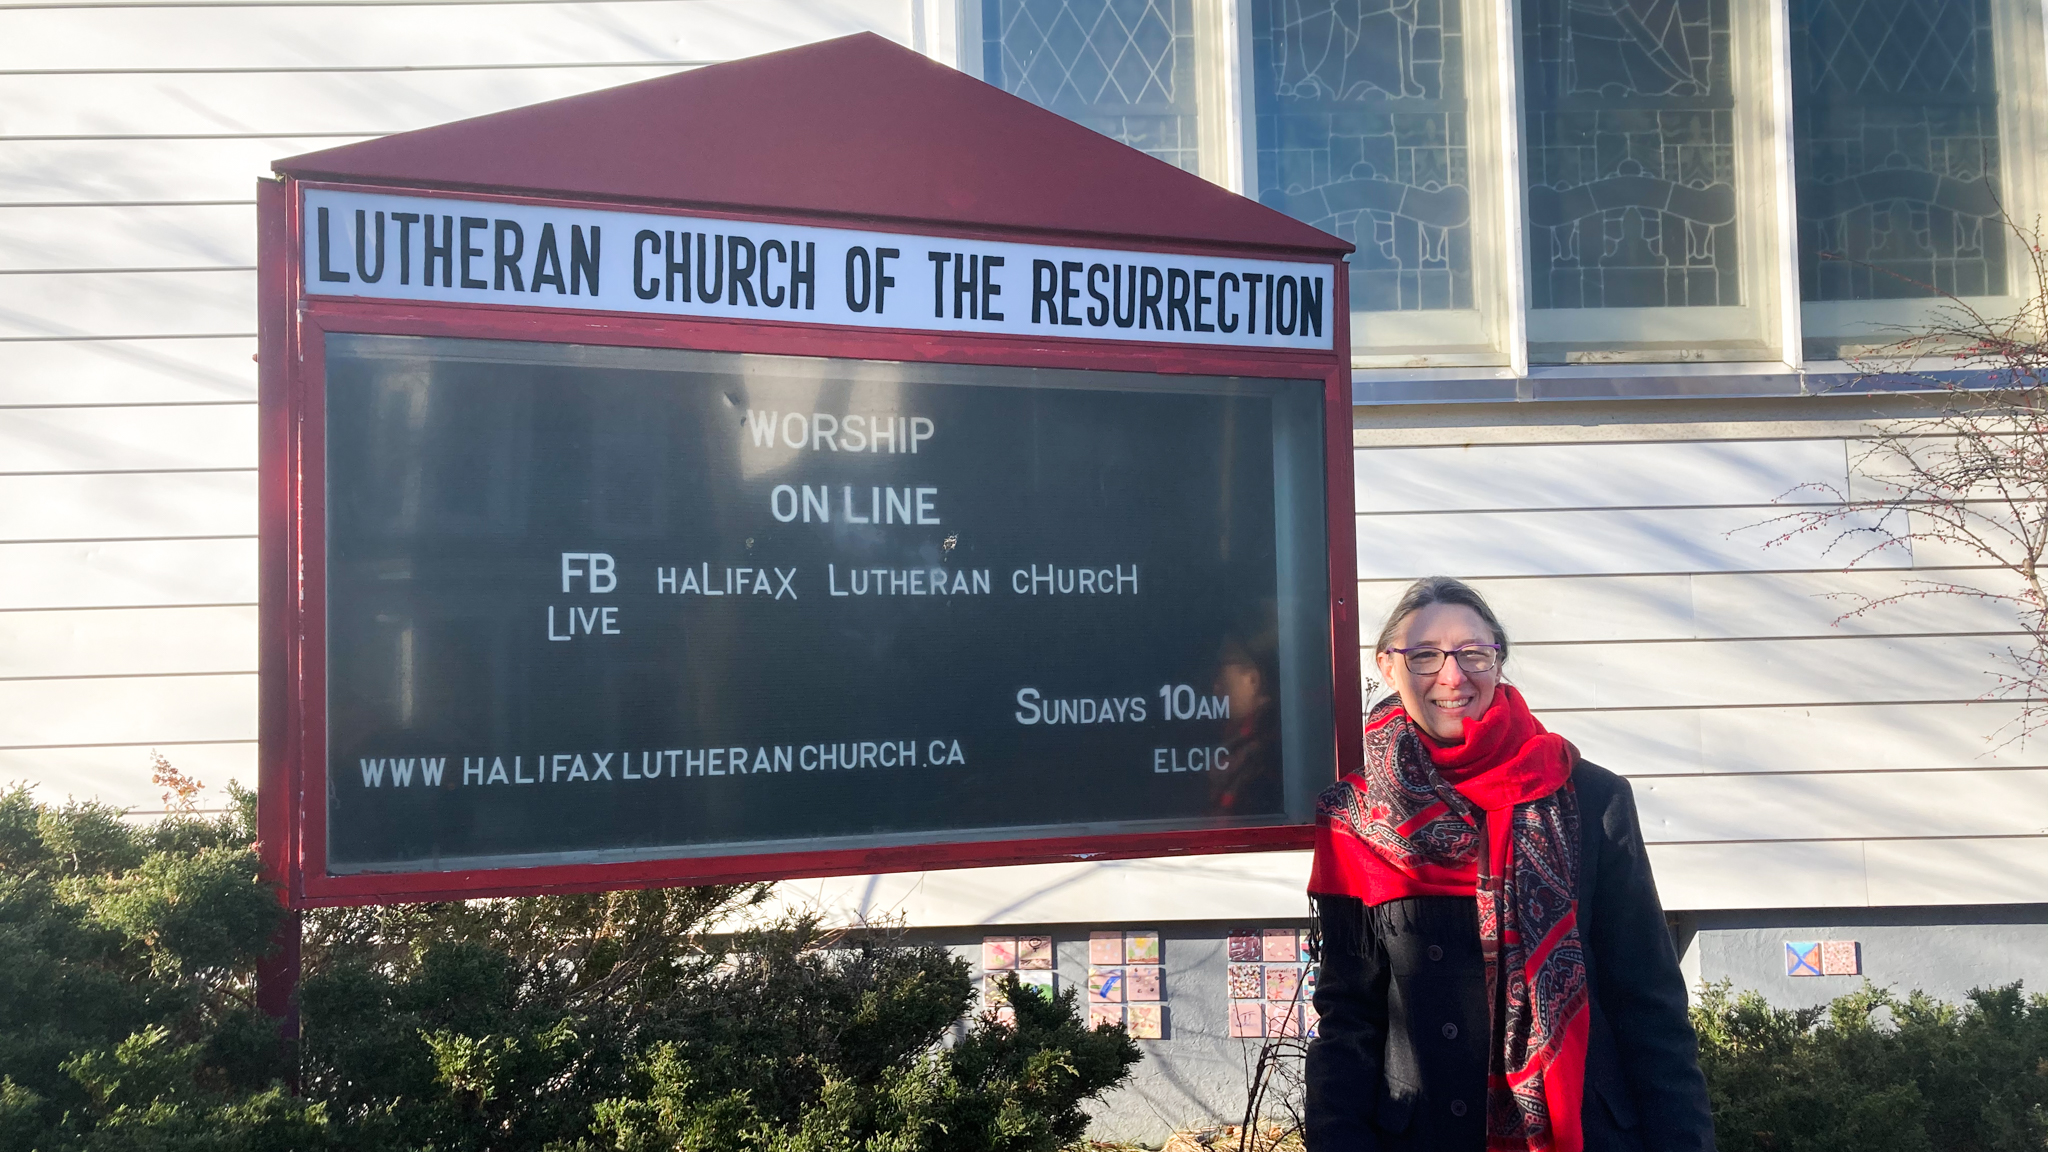 Pastor Kimberlynn McNabb  in front of the Lutheran Church of the Resurrection.